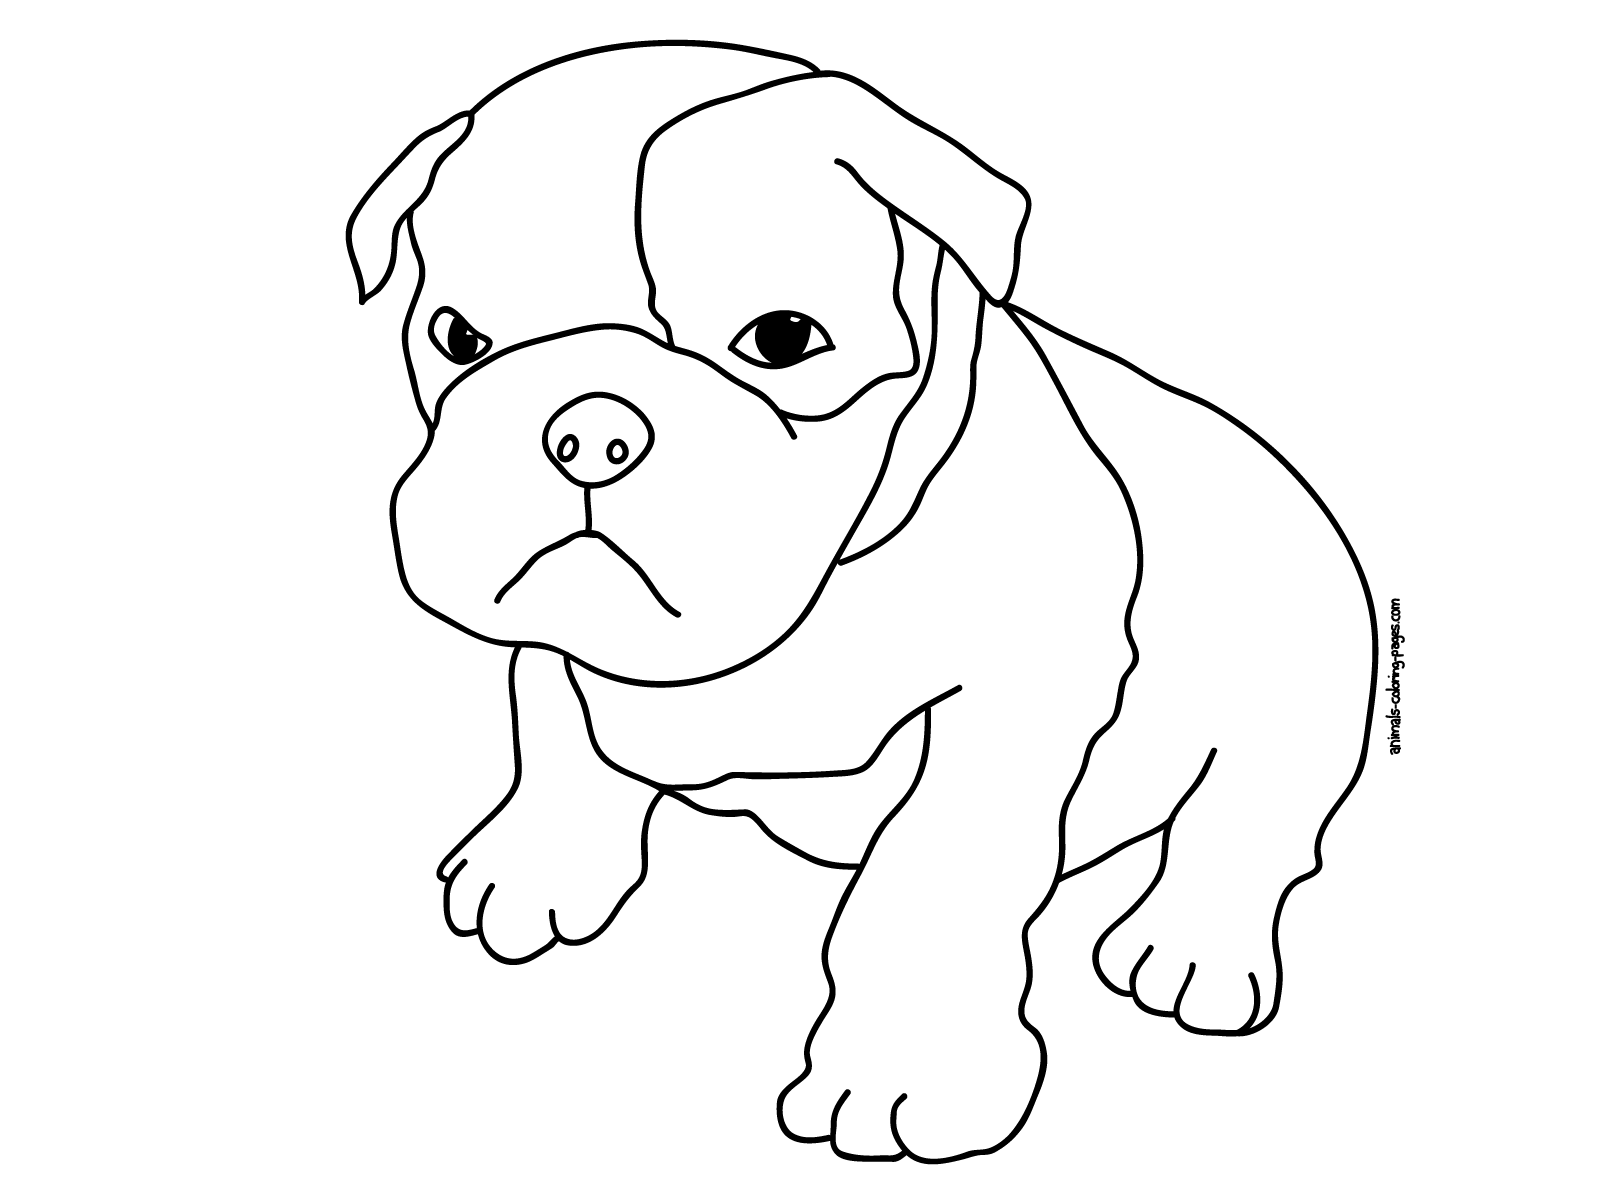 Cute Animal Coloring Pages to Print | Coloring page of a boxer puppy ...